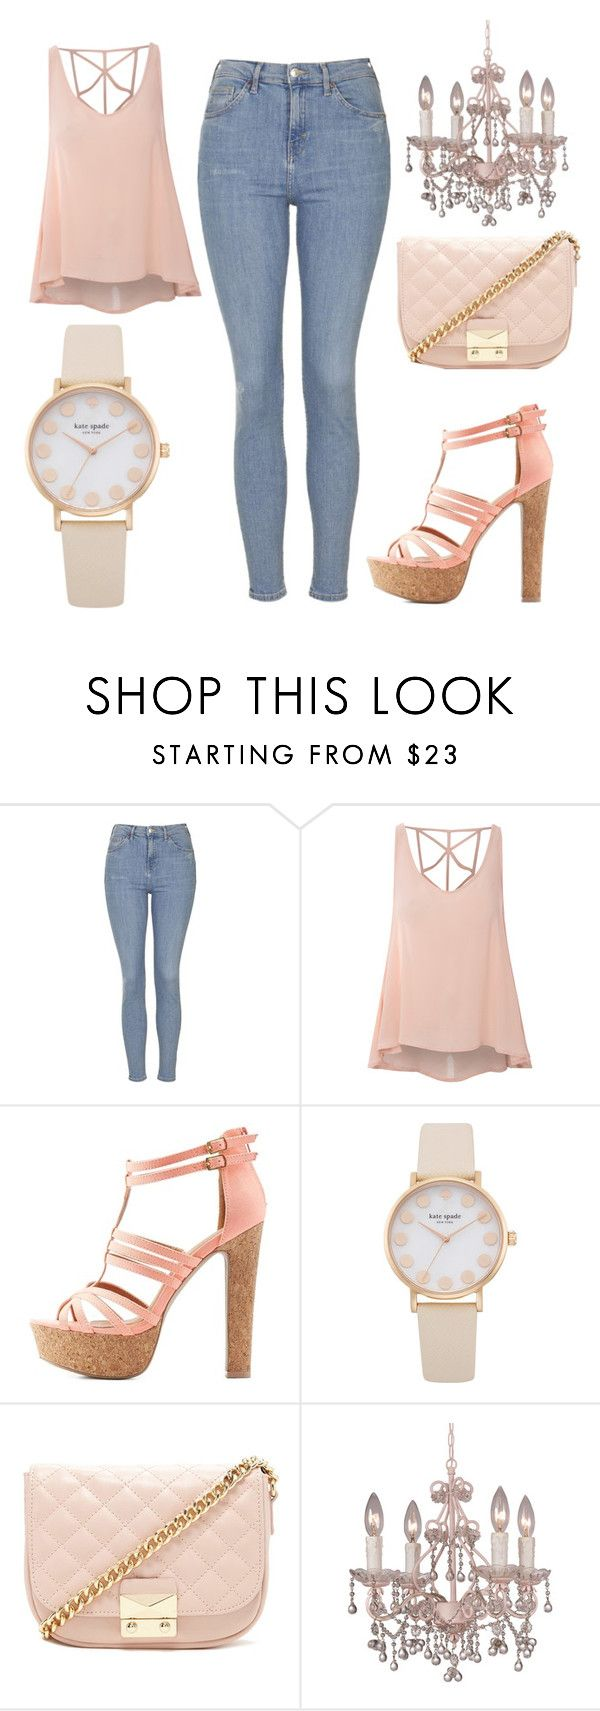 """this pretty girl"" by jjbear ❤ liked on Polyvore featuring Topshop, Glamorous, Charlotte Russe, Forever 21 and Crystorama"